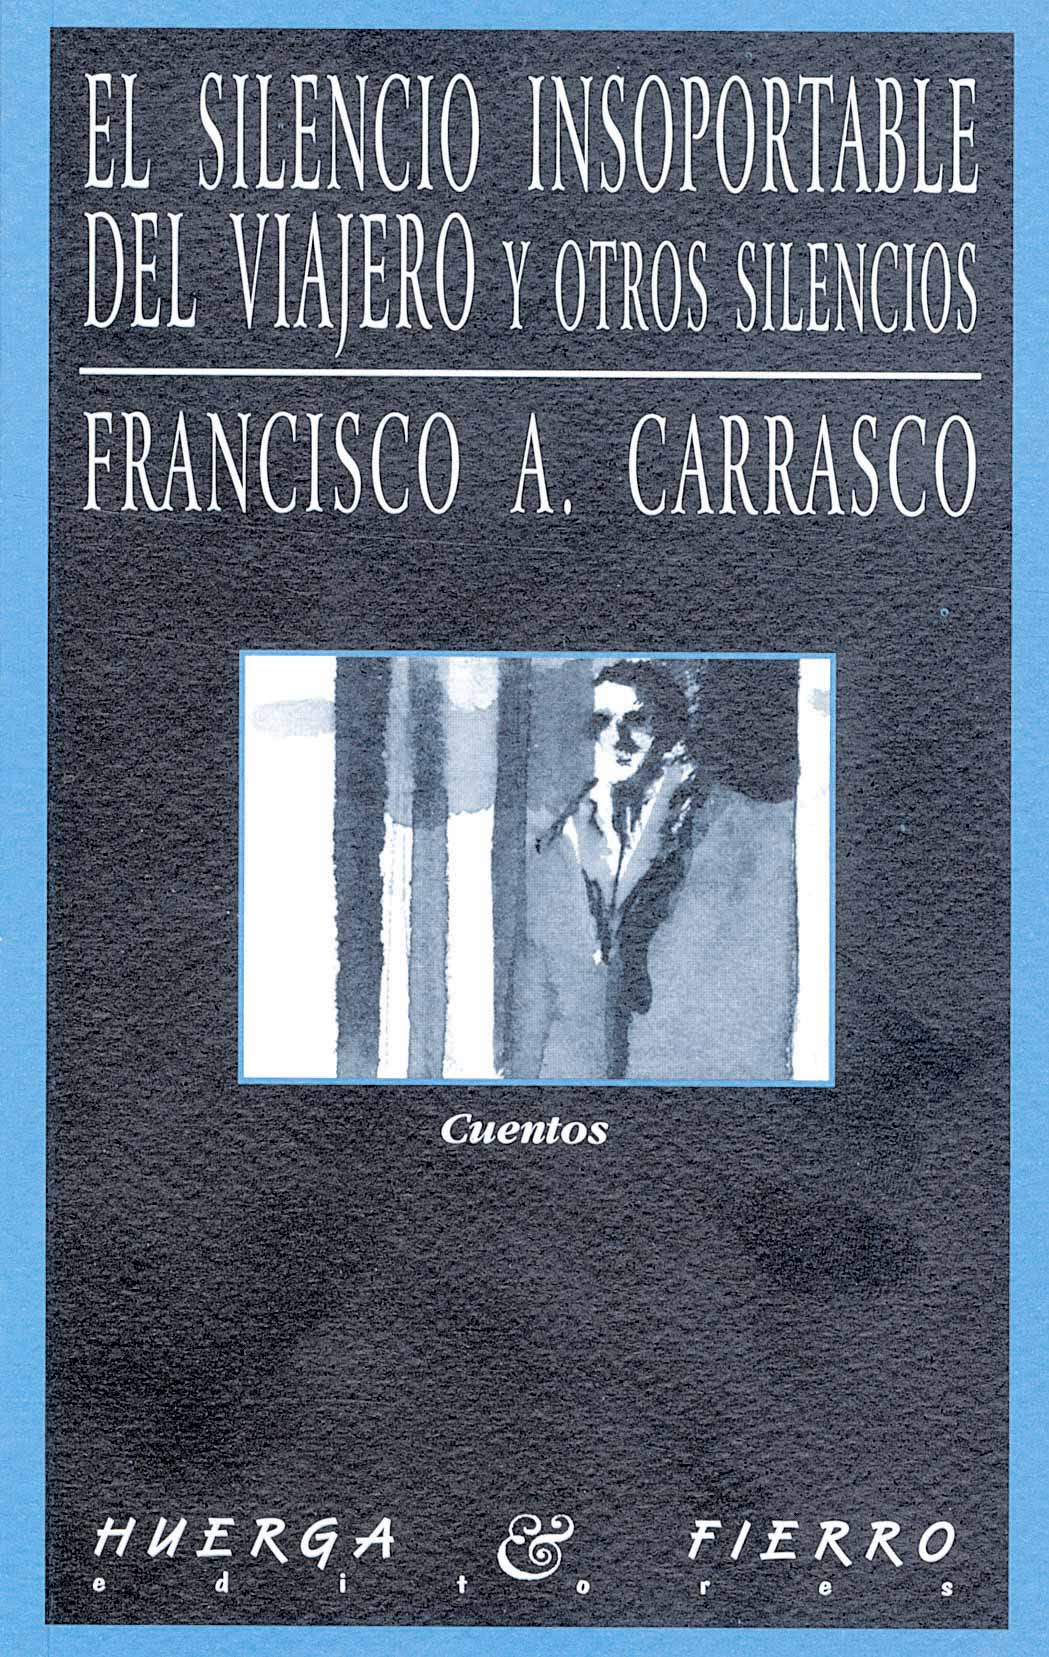 Francisco Antonio Carrasco - El silencio insoportable